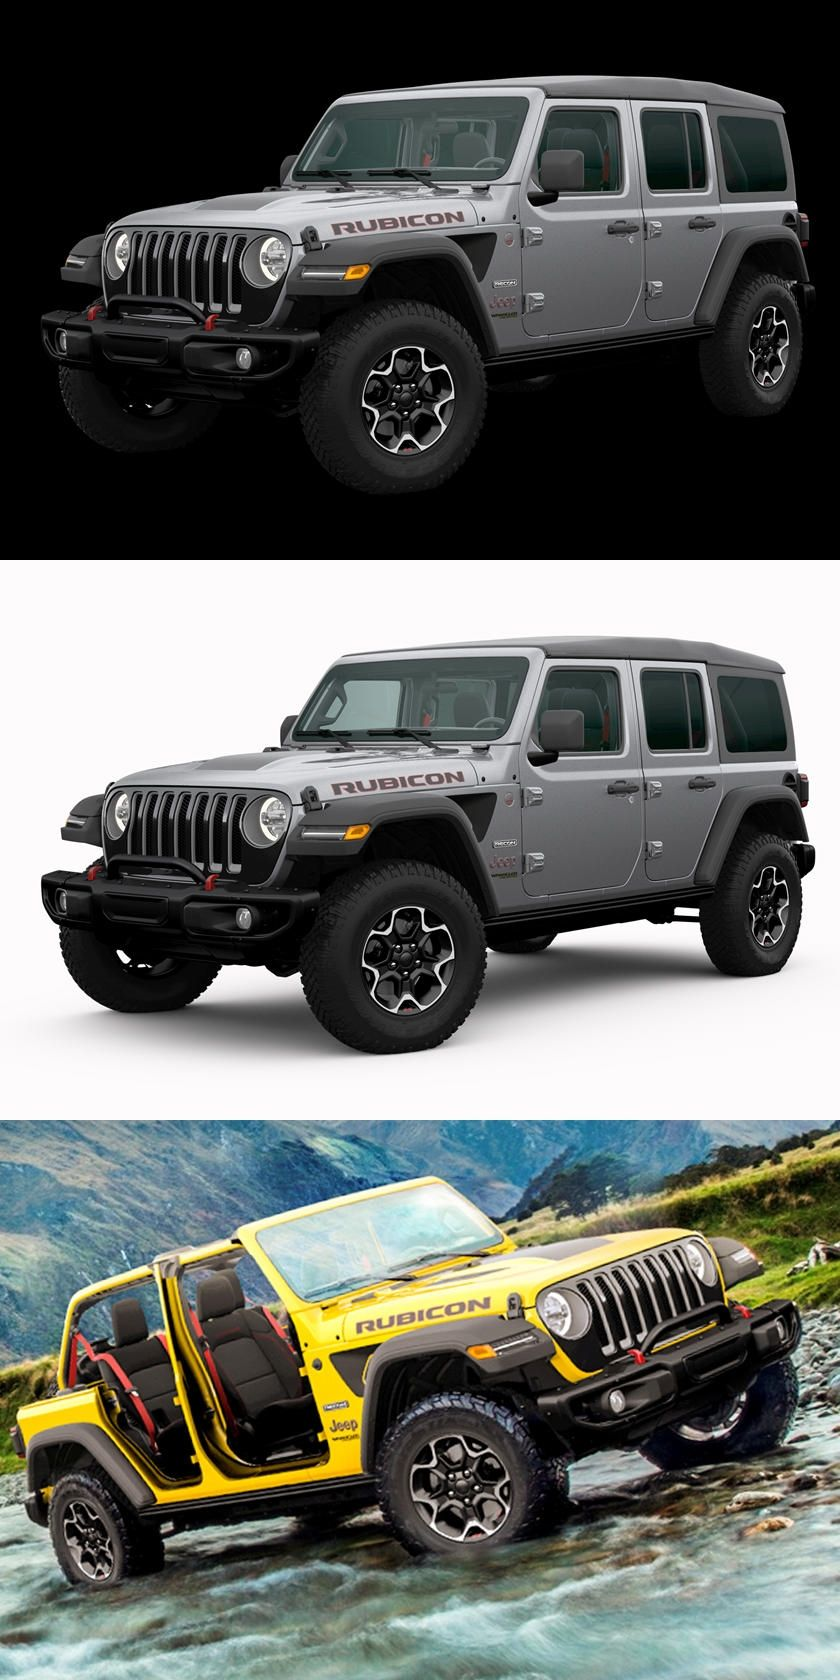 It S Official The Most Off Road Capable Jeep Wrangler Is Back In 2020 Jeep Wrangler Jeep Wrangler Rubicon Jeep